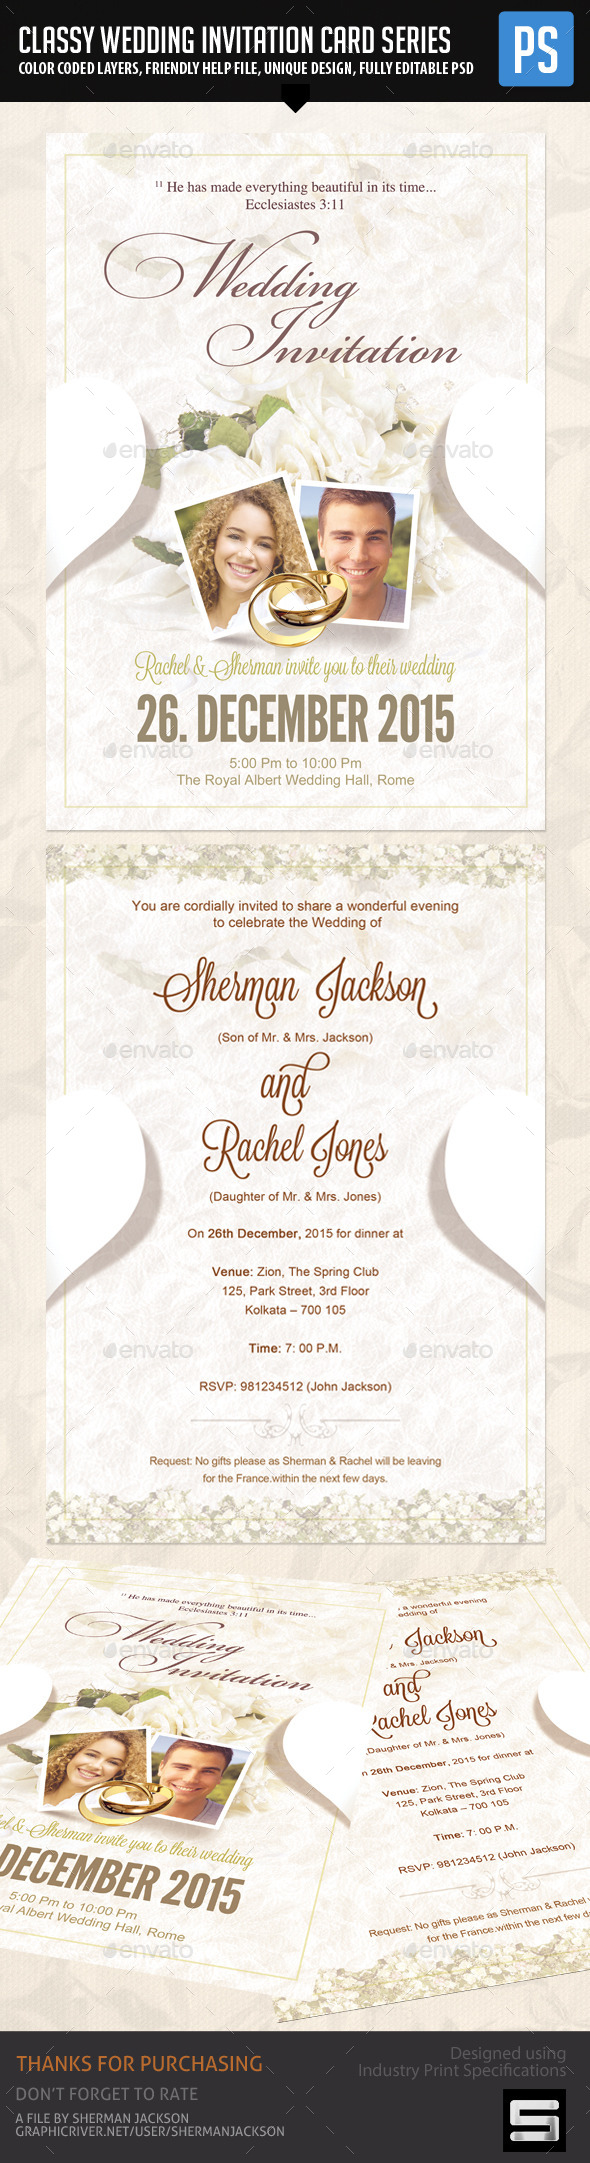 Classy Wedding Invitation 02 - Weddings Cards & Invites